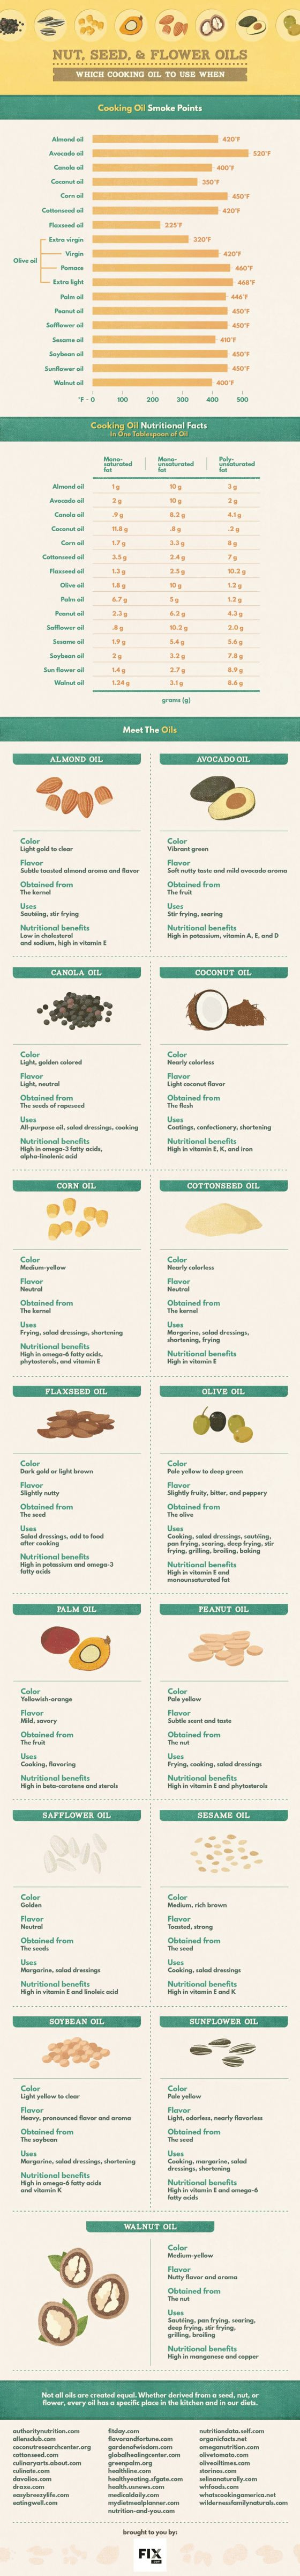 Nut, Seed and Flower Oils